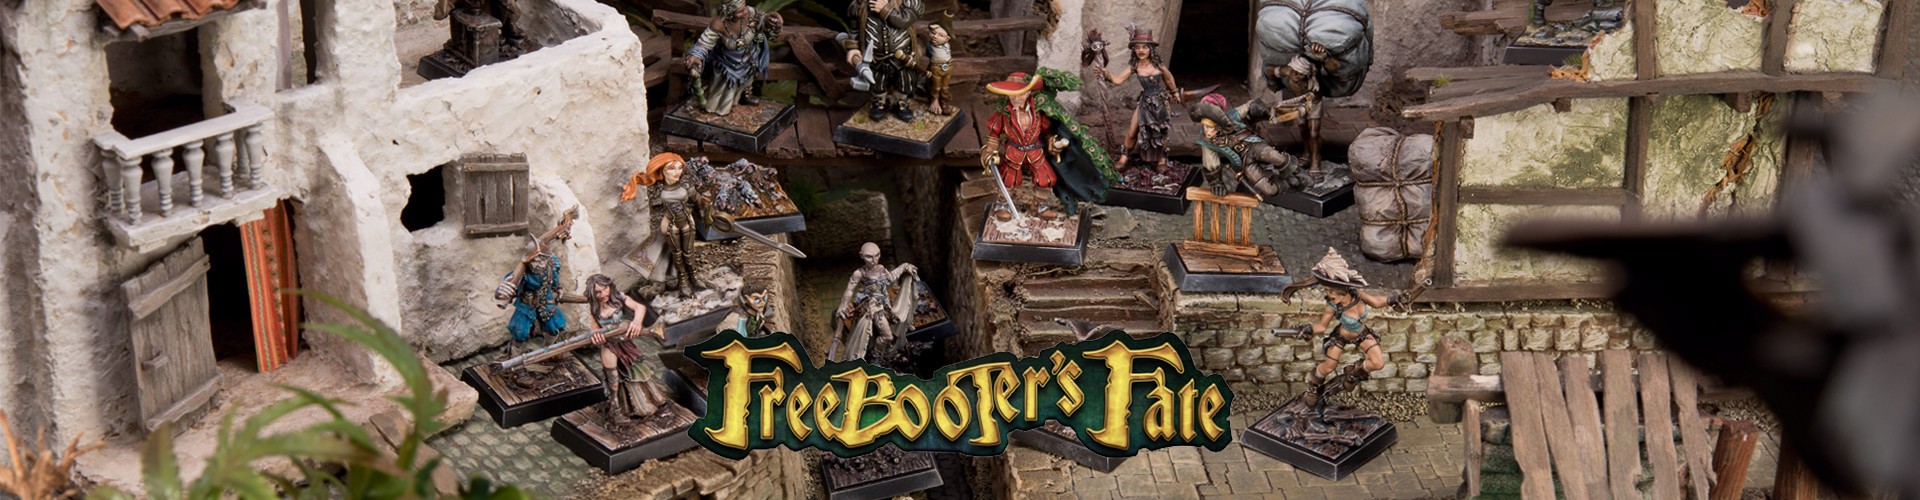 DEMO 11 Freebooter Fate - Demospiele: FREEBOOTER´S FATE